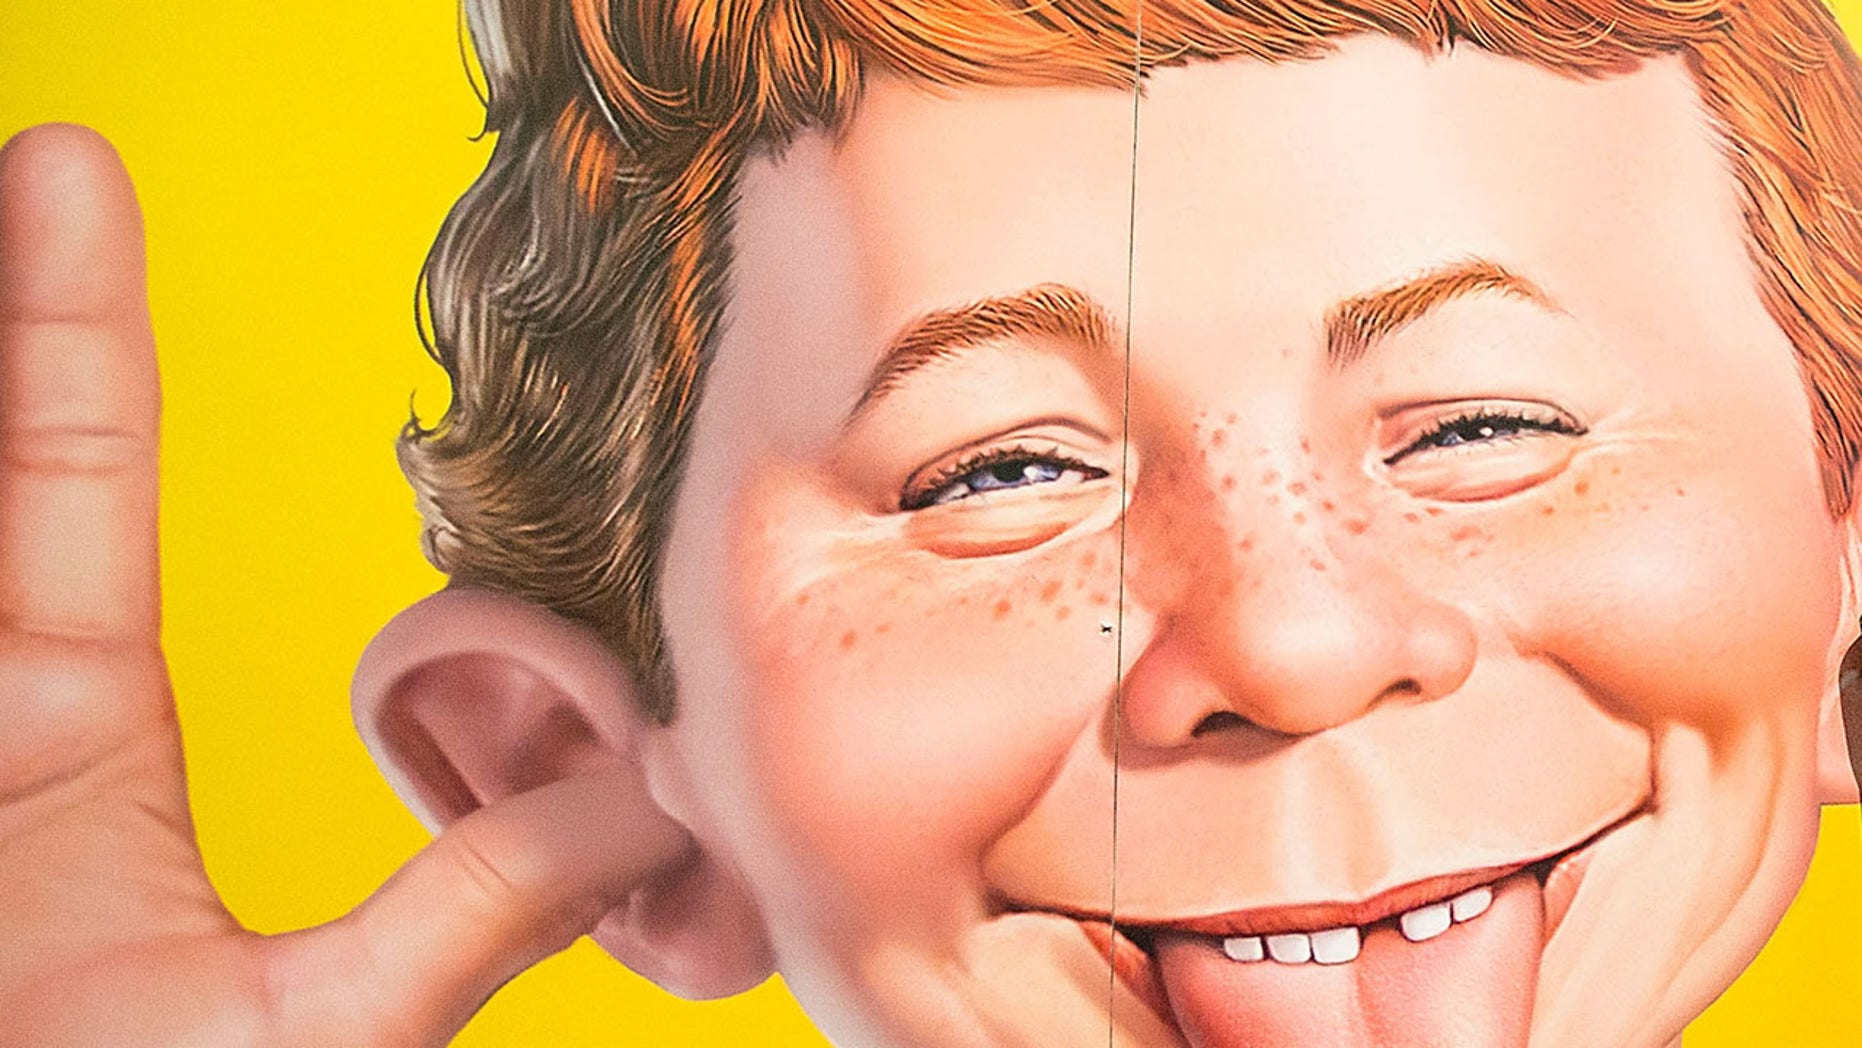 Alfred E. Neuman has been the face of Mad since 1956. (Photo by Daniel Knighton/FilmMagic)